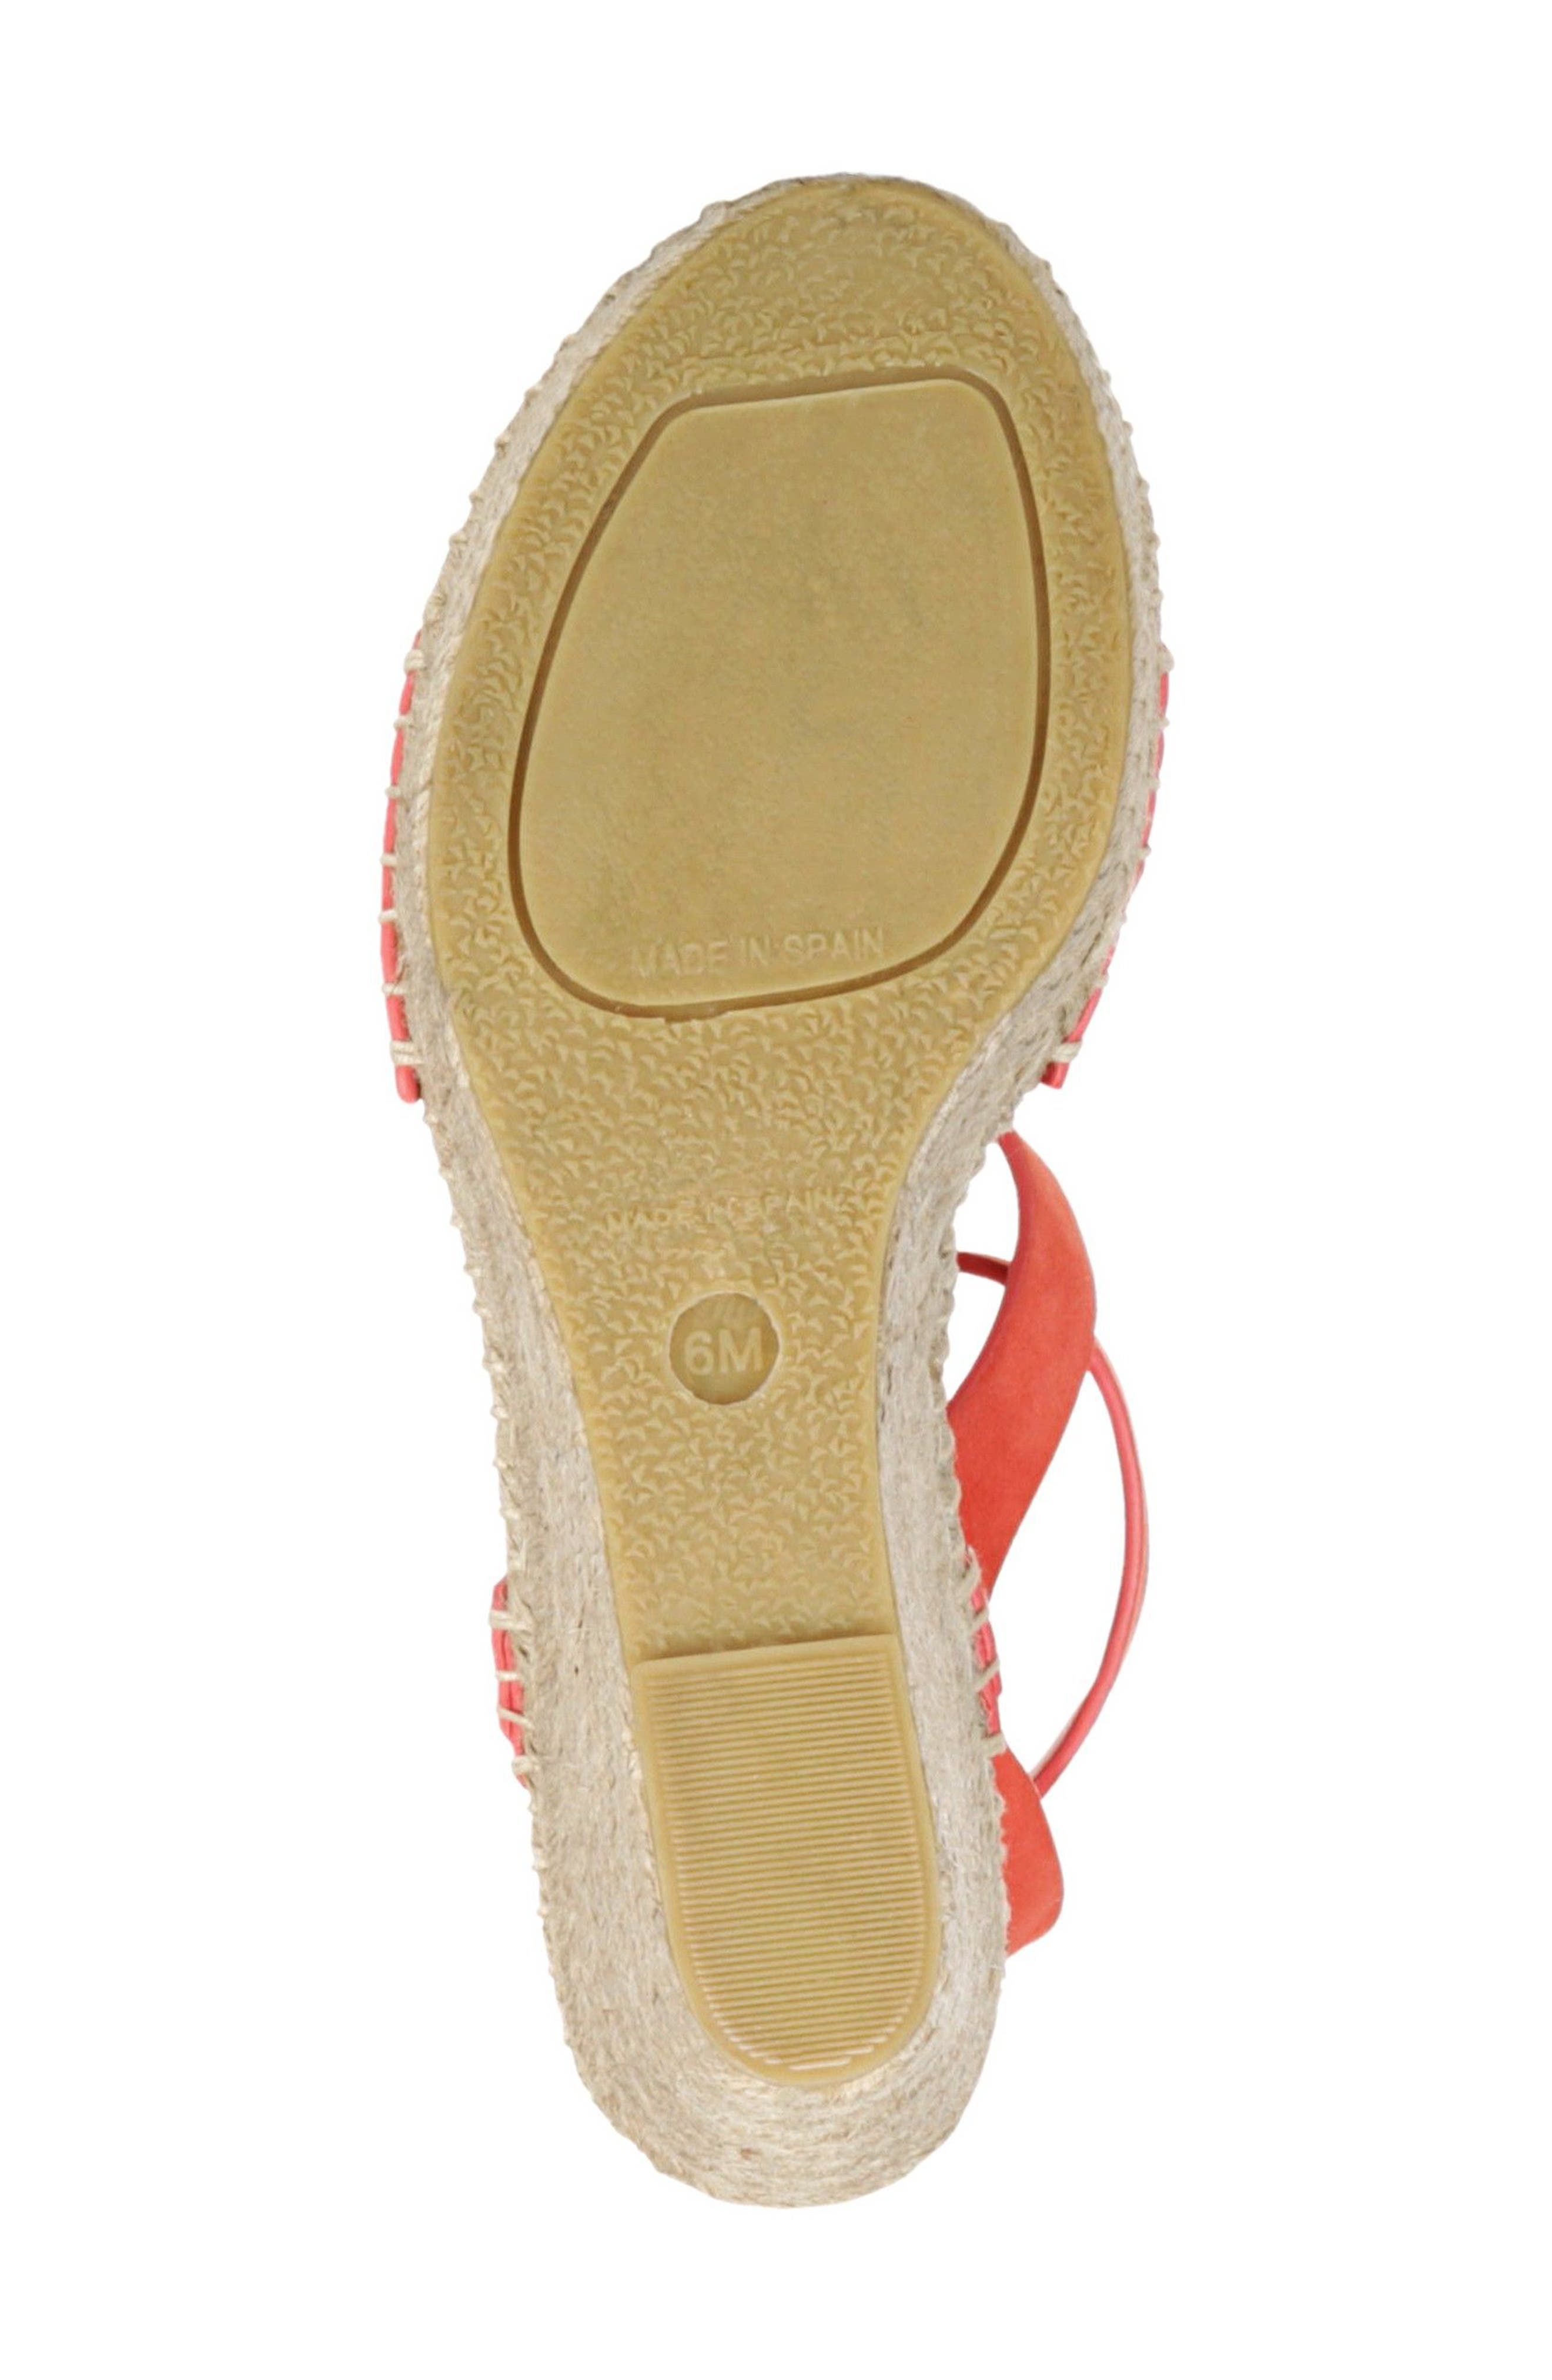 Nevada Espadrille Wedge Sandal,                             Alternate thumbnail 6, color,                             Poppy Red Suede